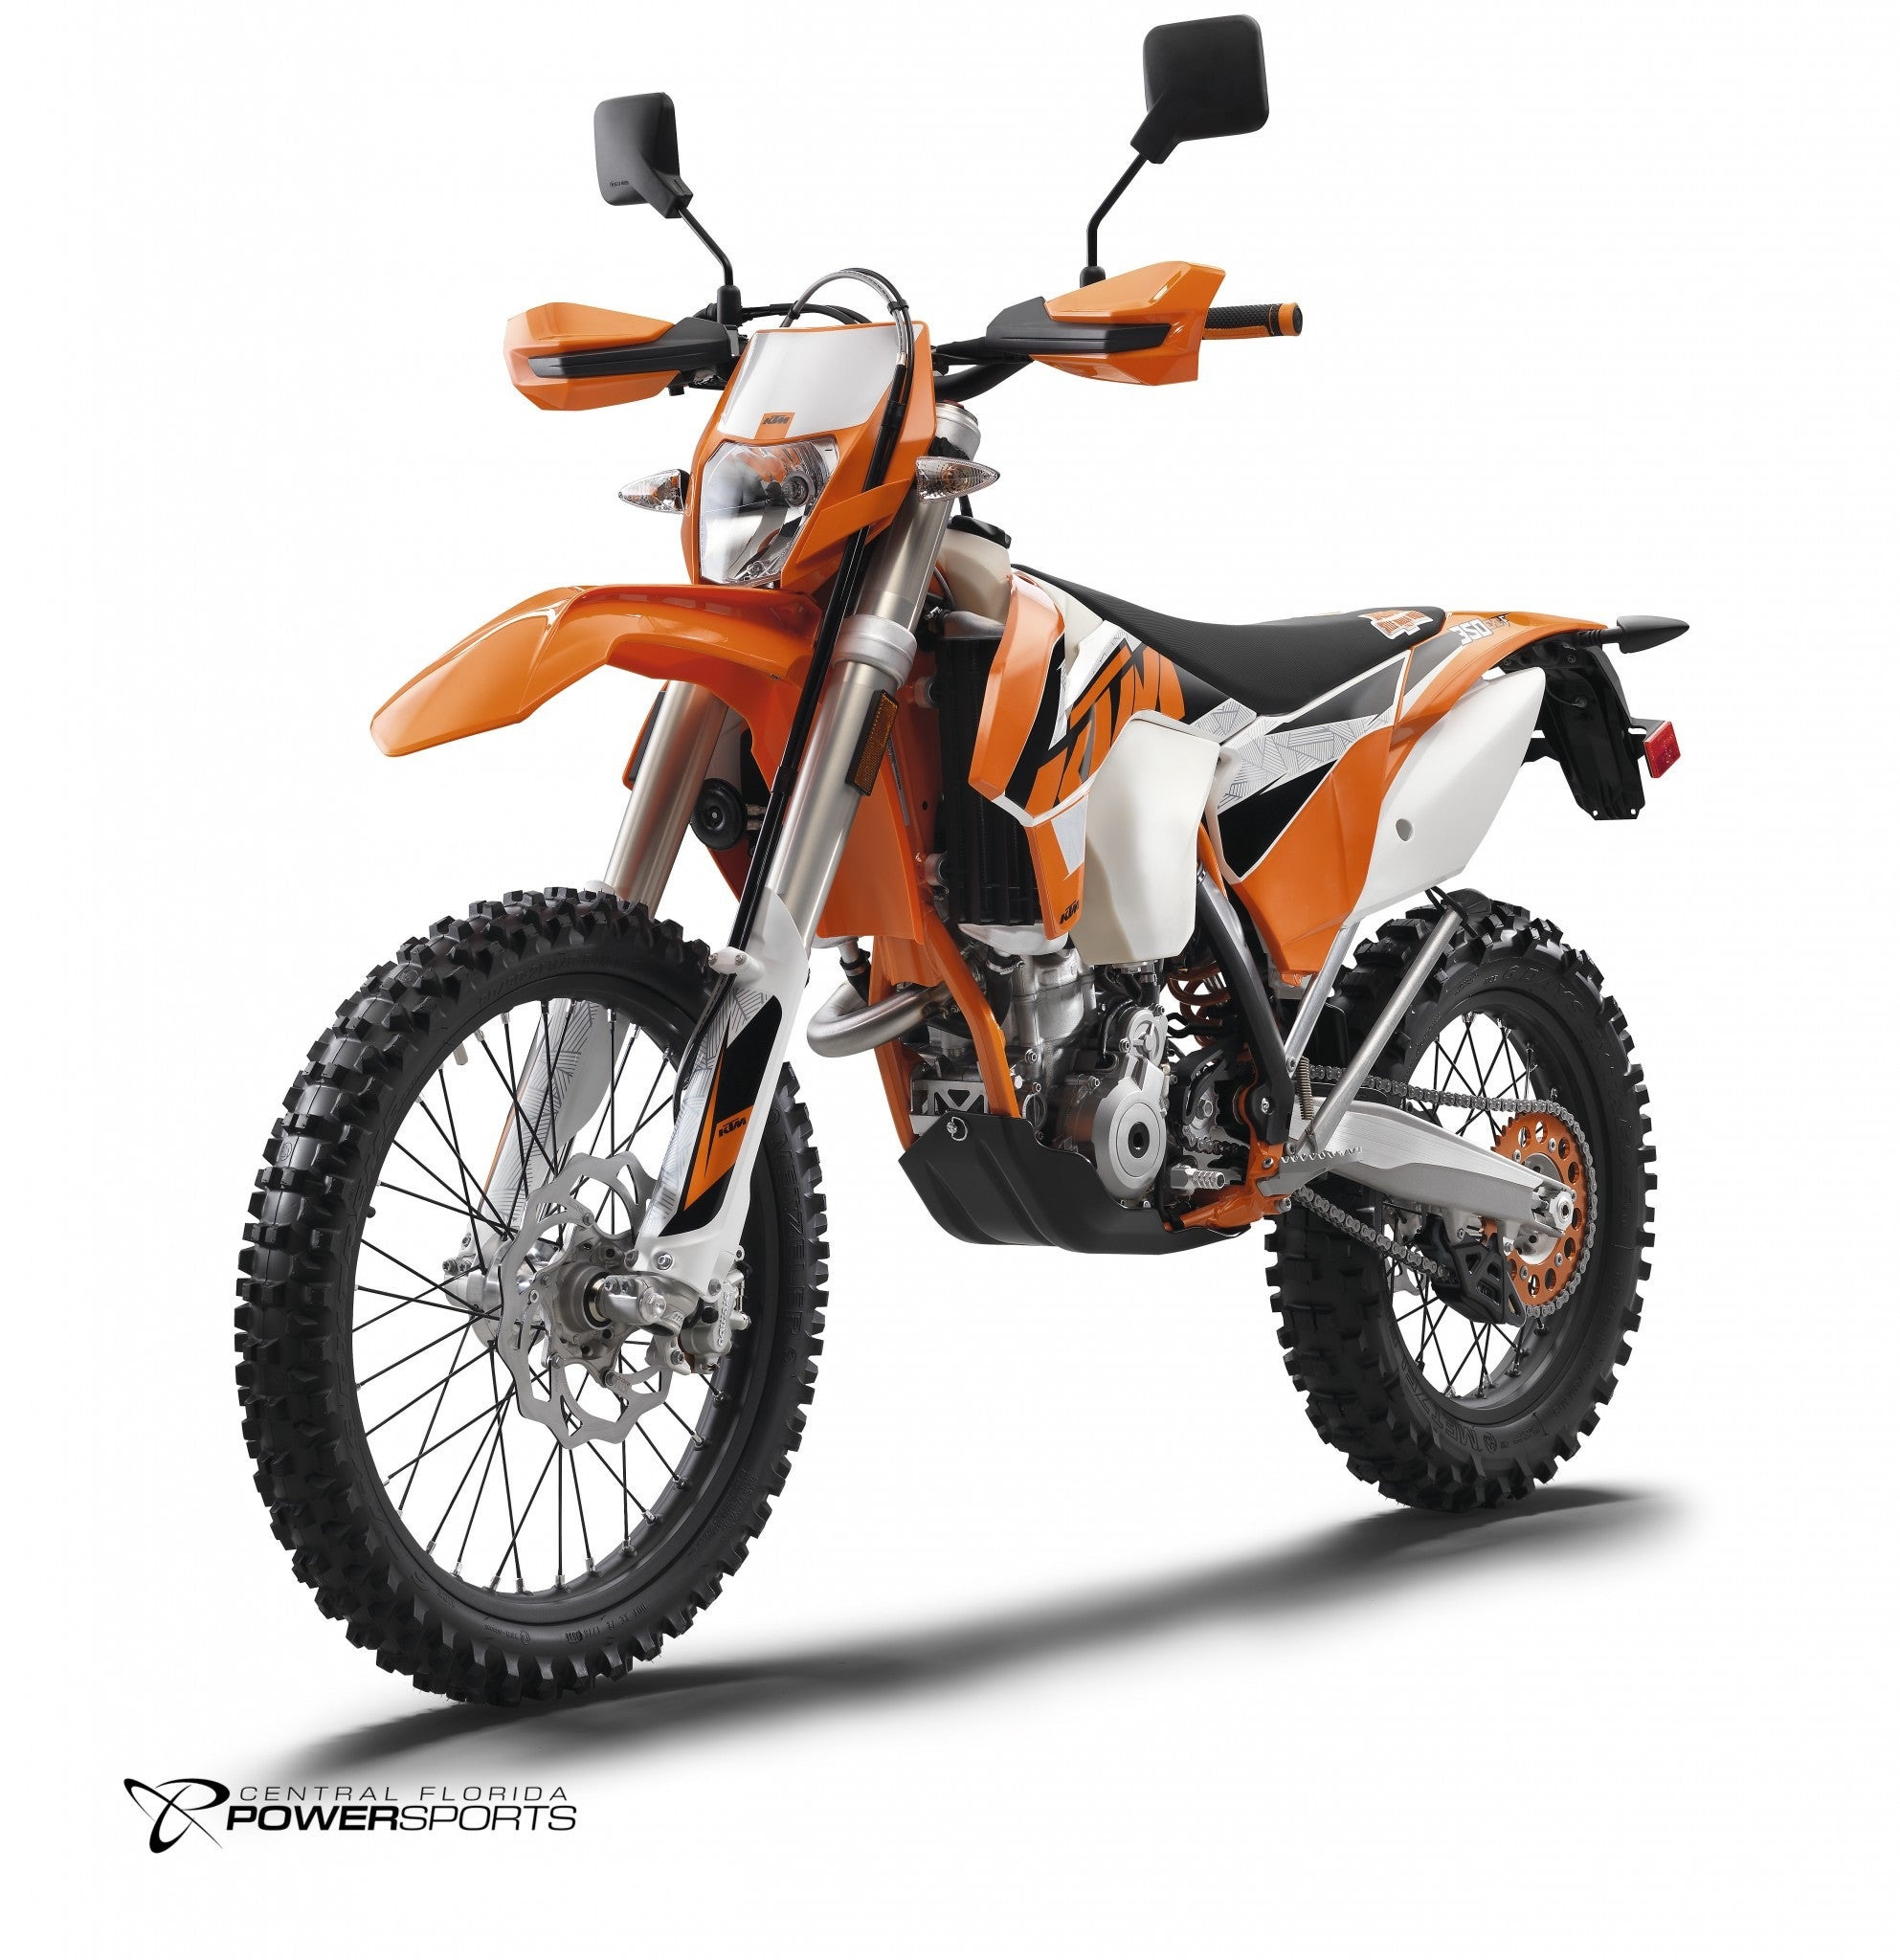 NEW 2017 KTM 350 EXC-F Dual Sport Off-Road Motorcycle - Kissimmee ...